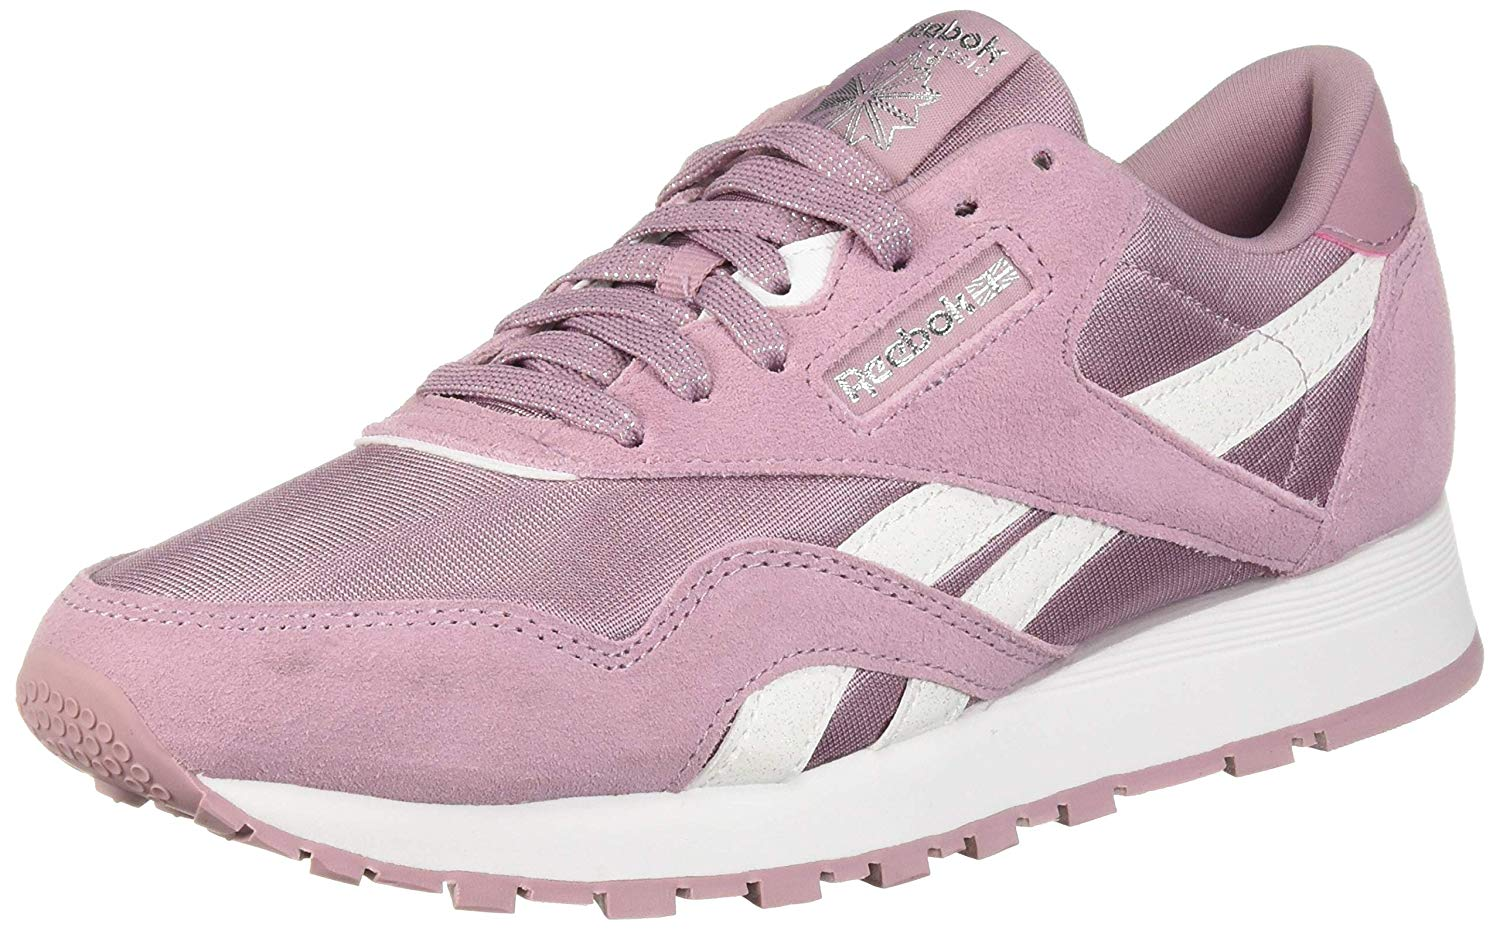 d6a8581f Details about Kids Reebok Boys Classic Nylon, Infused Lilac/White/Silver,  Size Big Kid 3.5